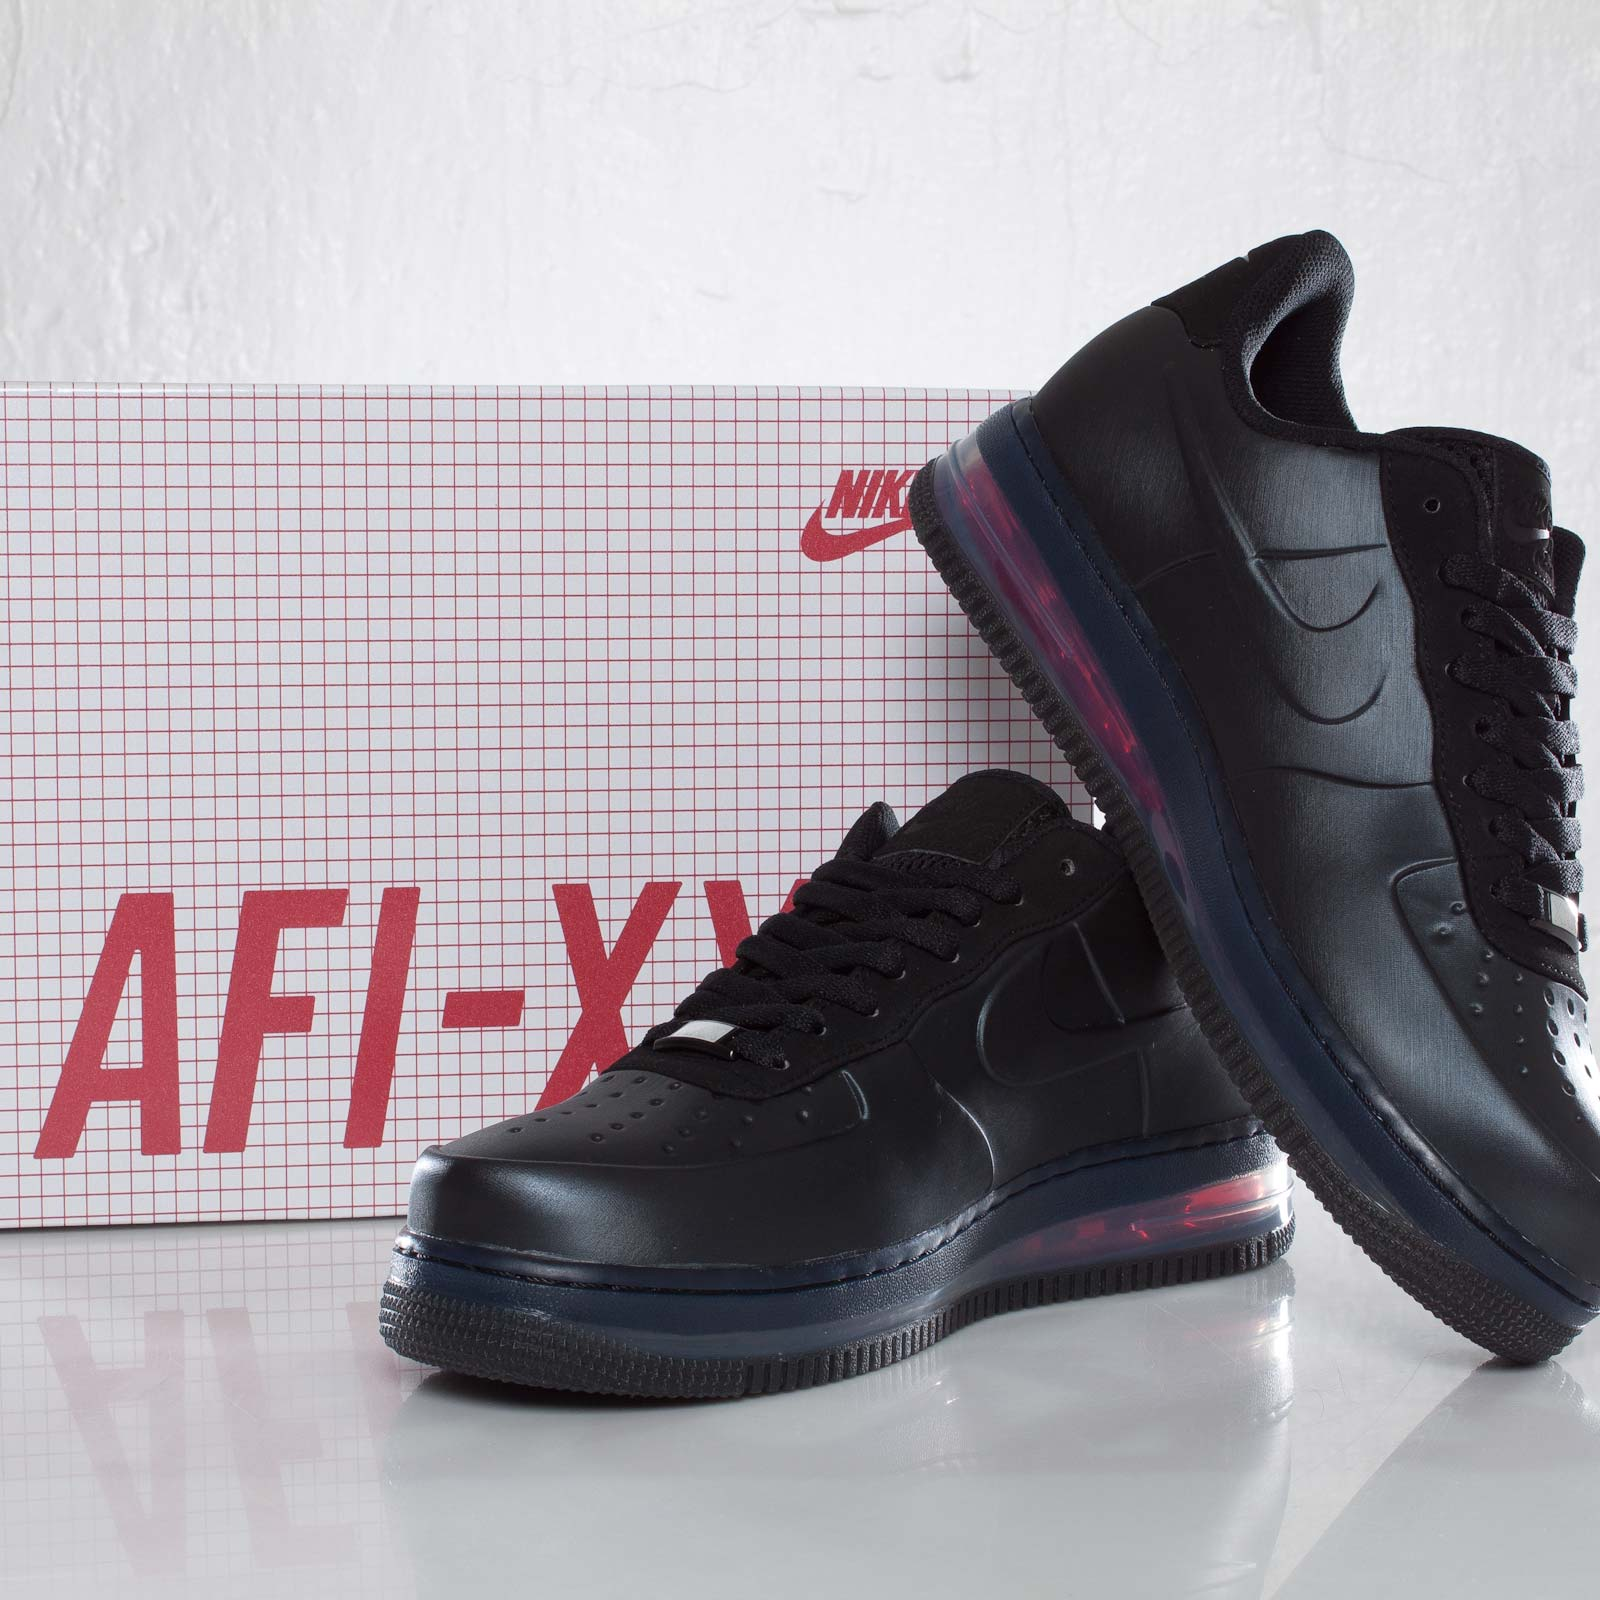 new arrivals 7317a 42461 Nike Air Force 1 Posite FL Max QS - 548968-010 ...